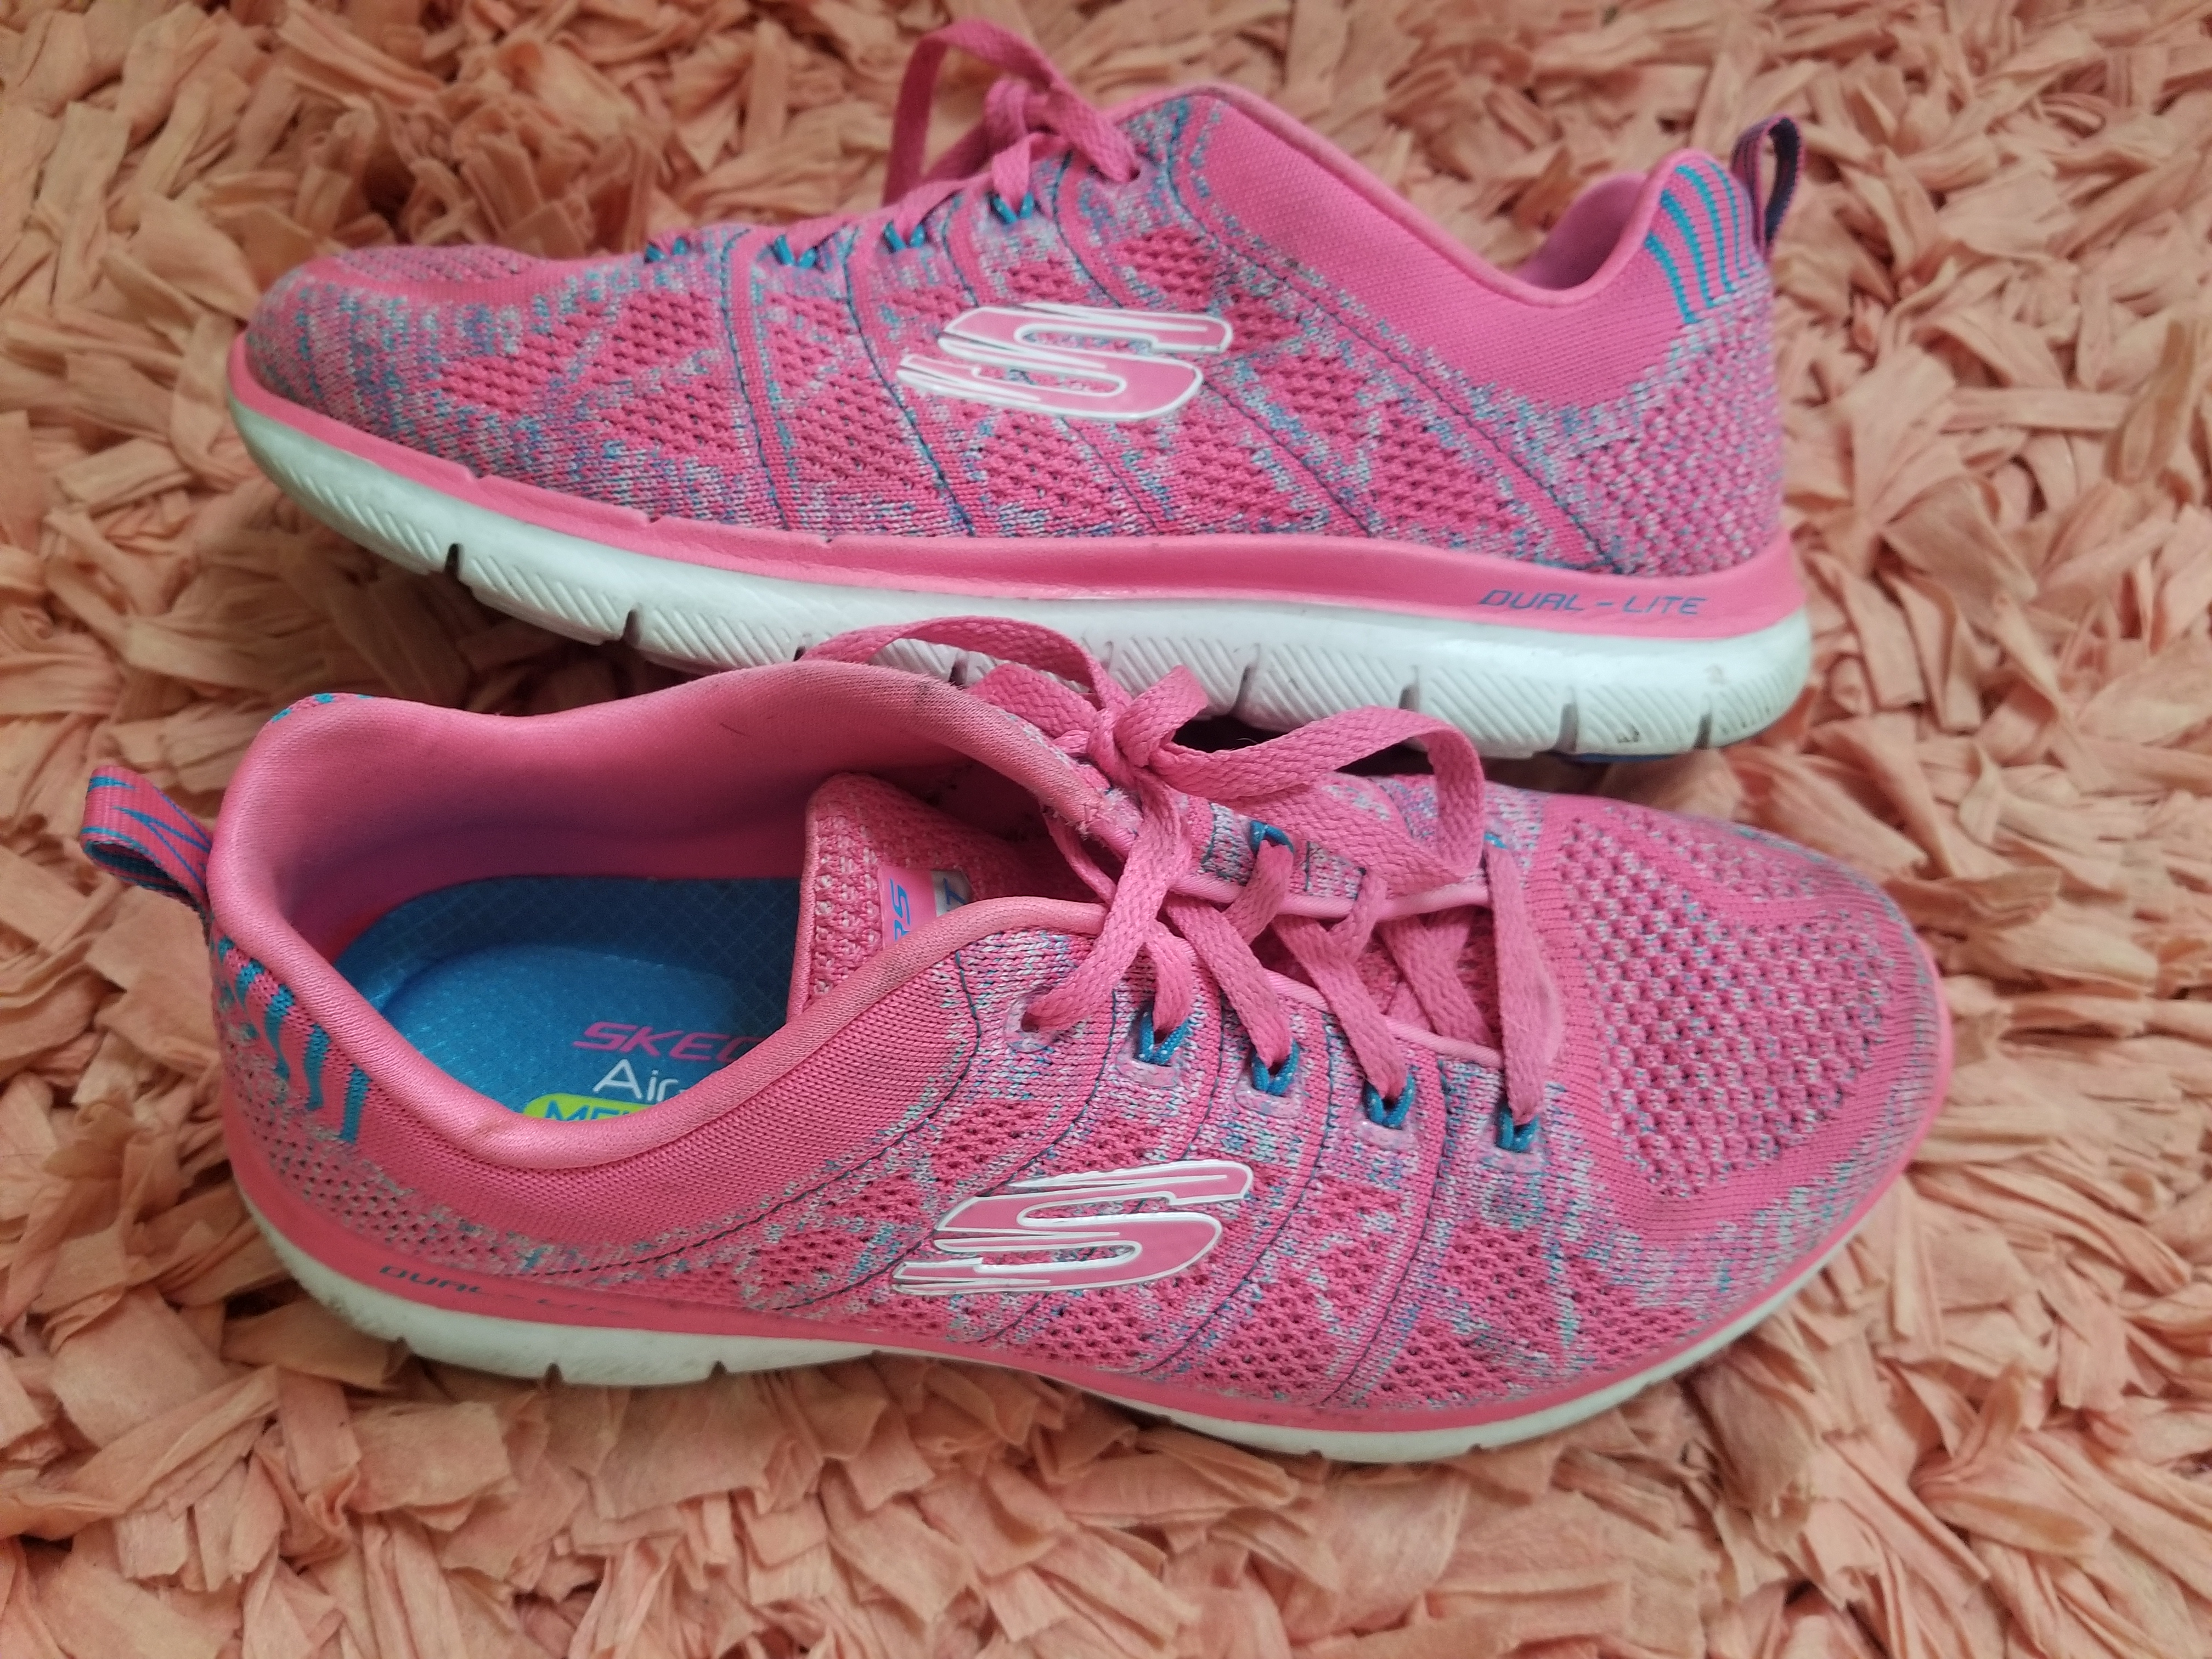 Skechers, Vegan, Athletics, shoes, sneakers